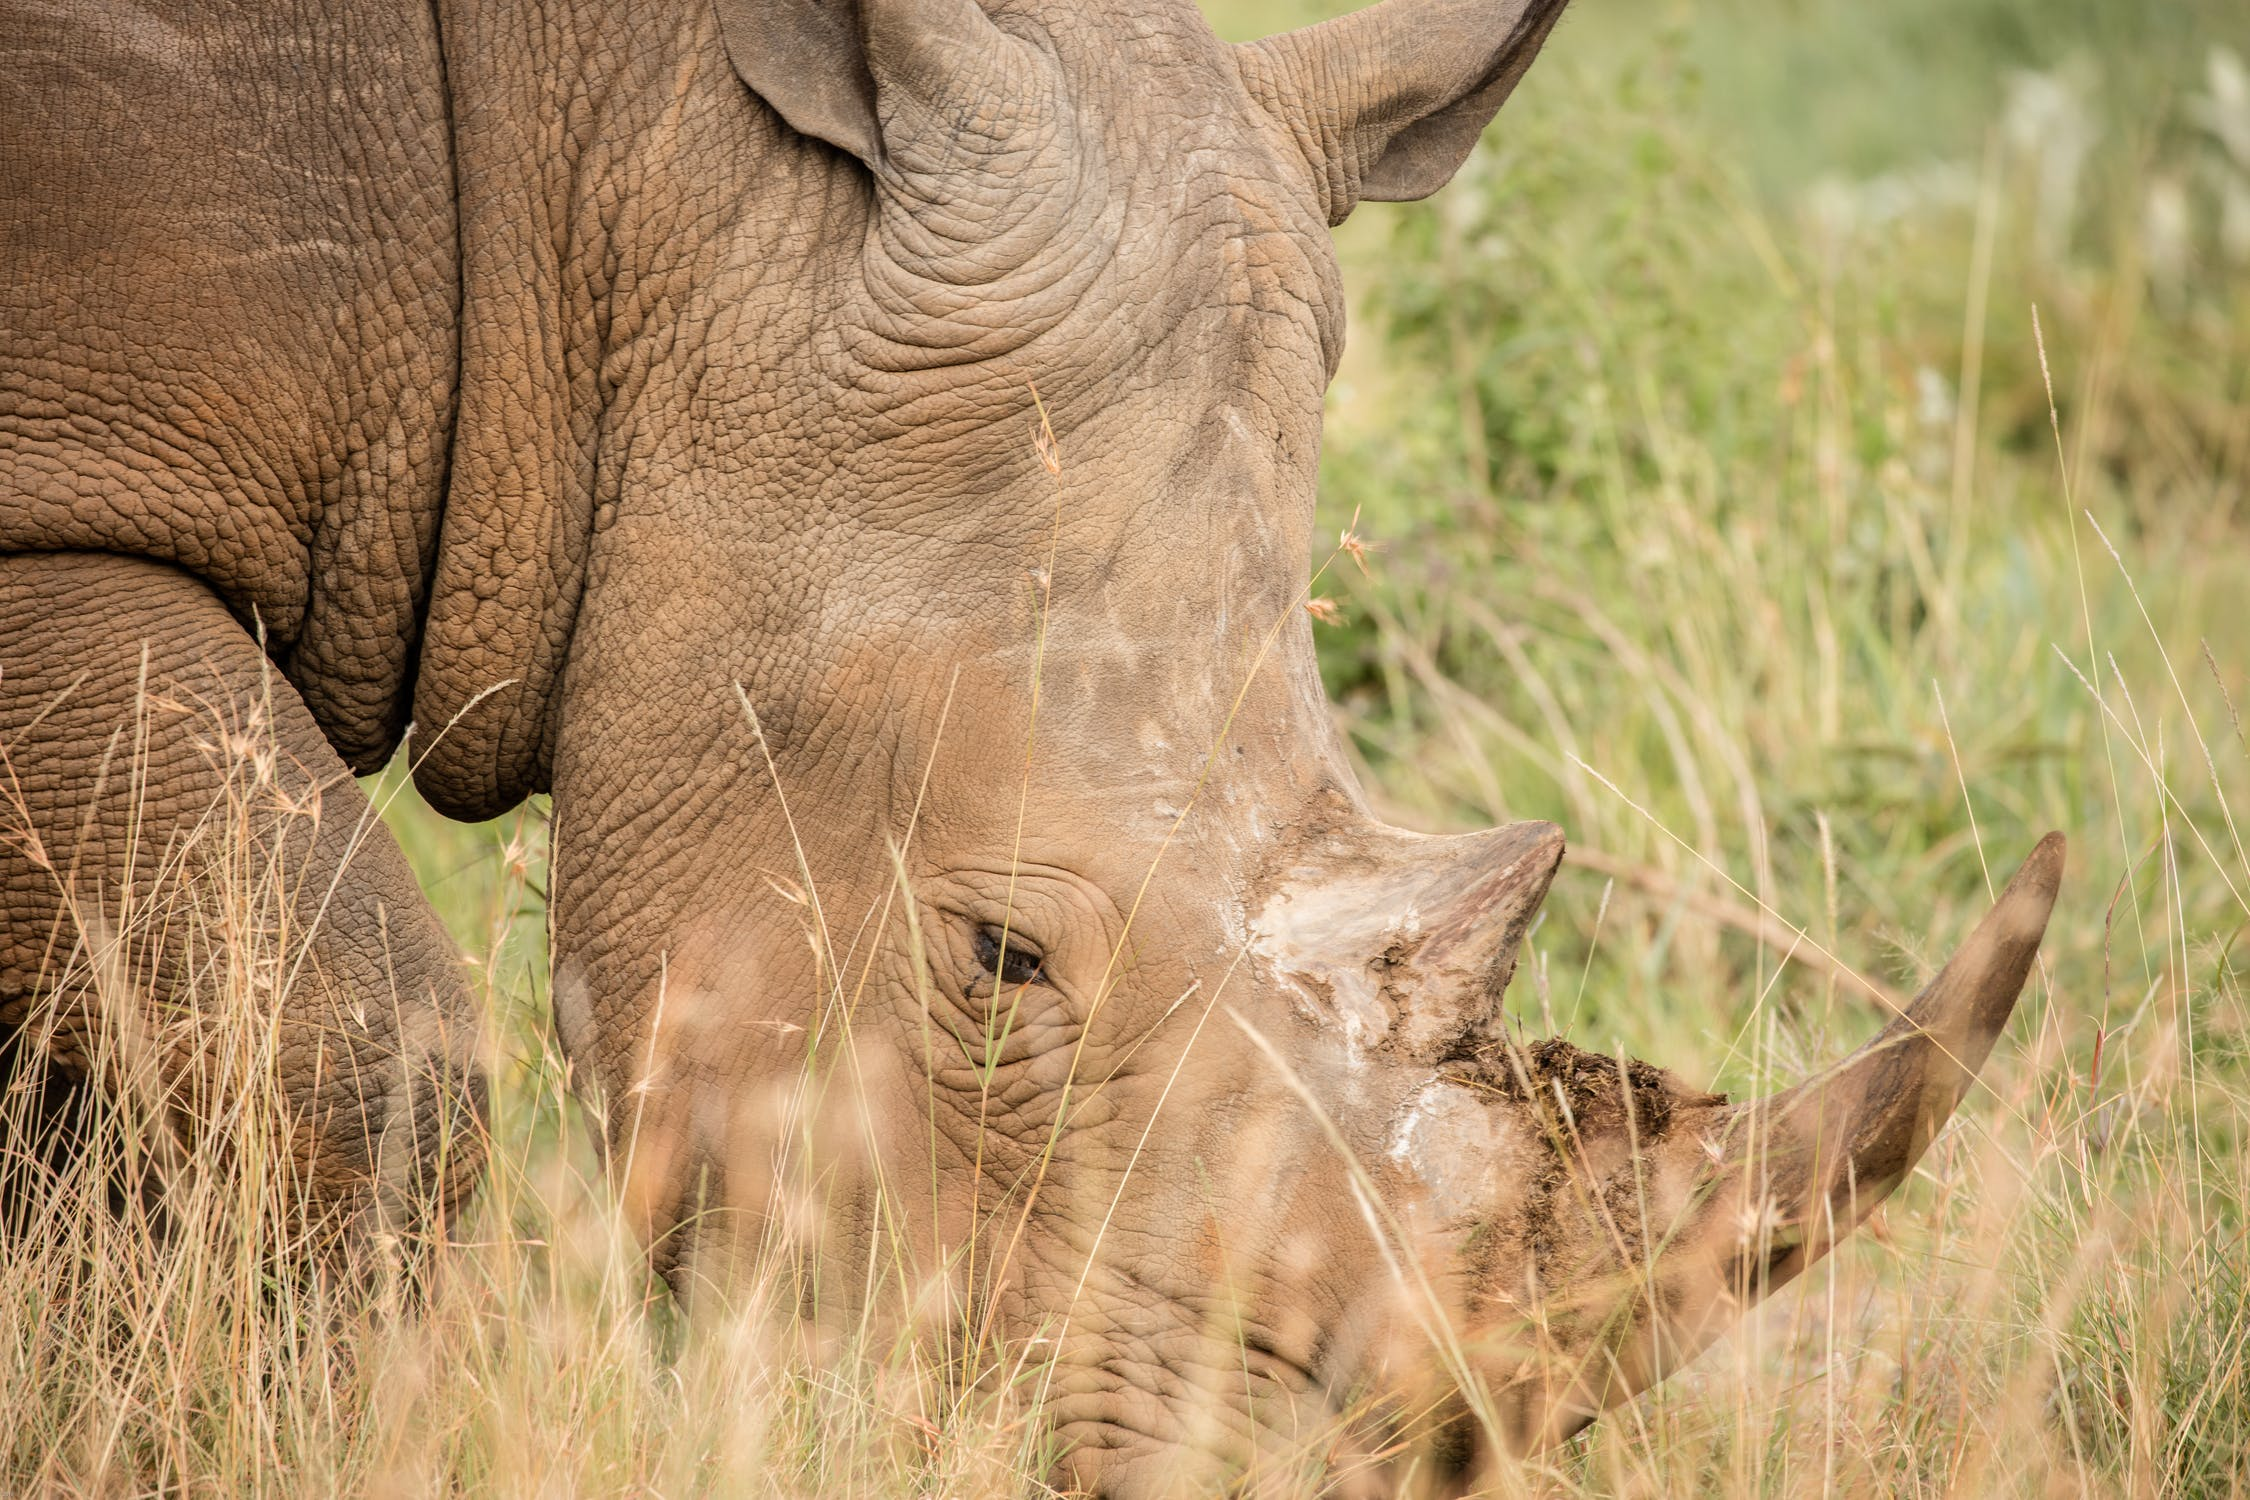 Rhino Poaching Fell by 33% in 2020, But Will It Last?